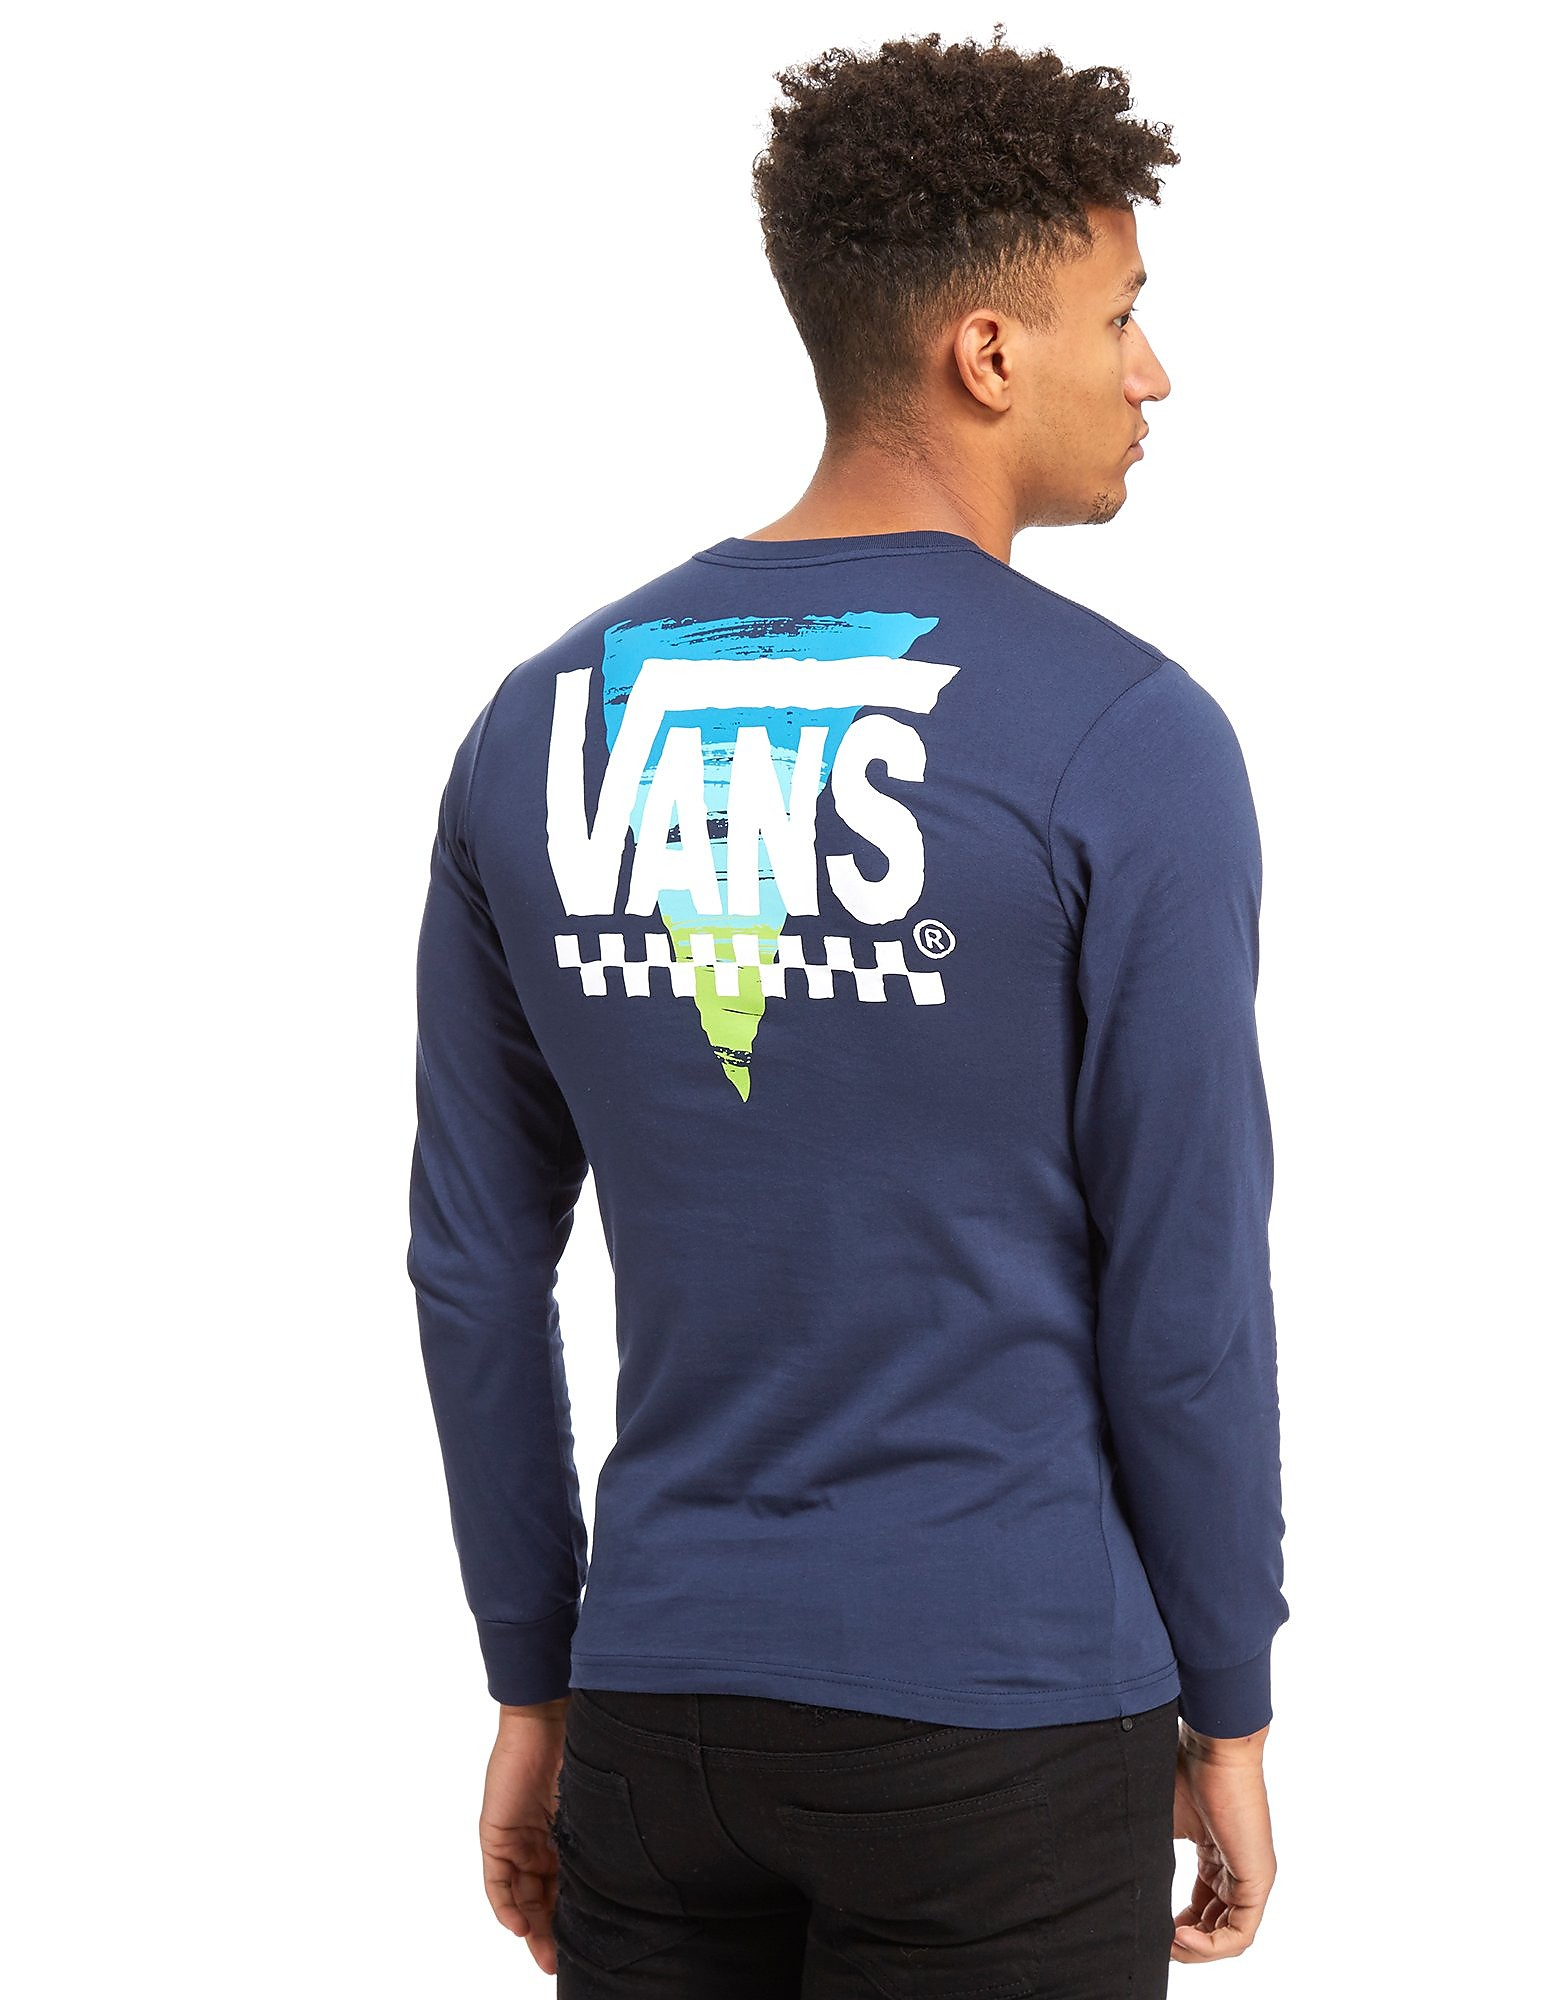 Vans Retro Triangle Long-Sleeved T-shirt